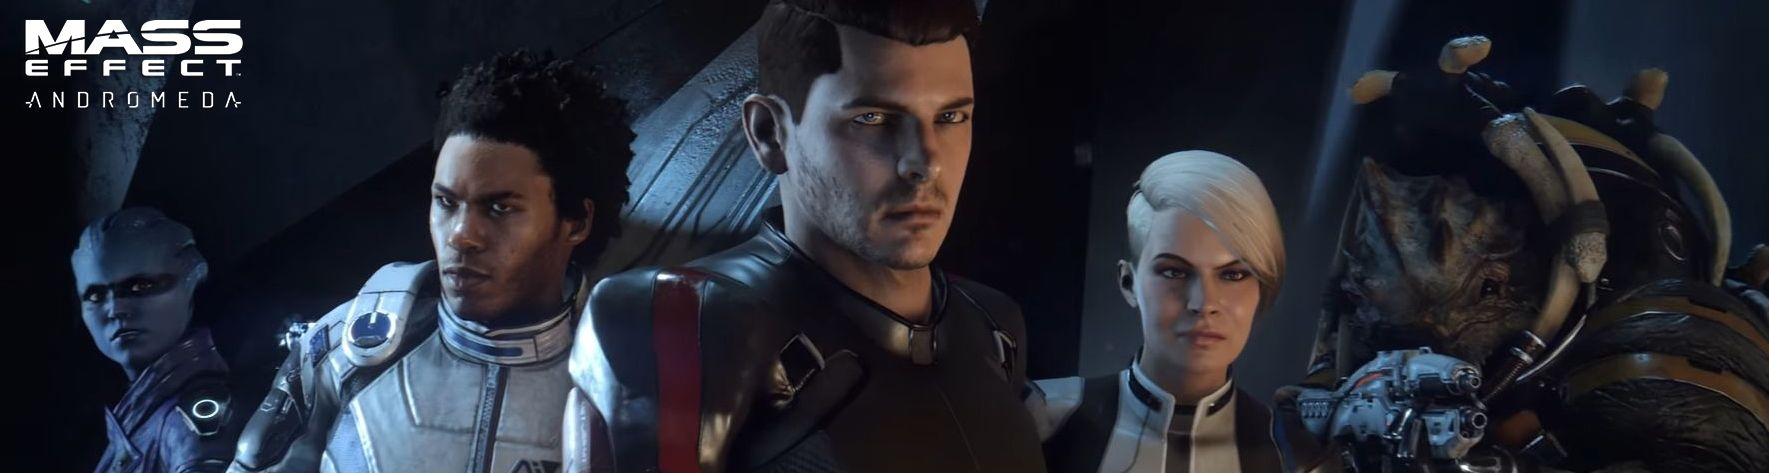 Mass Effect Andromède